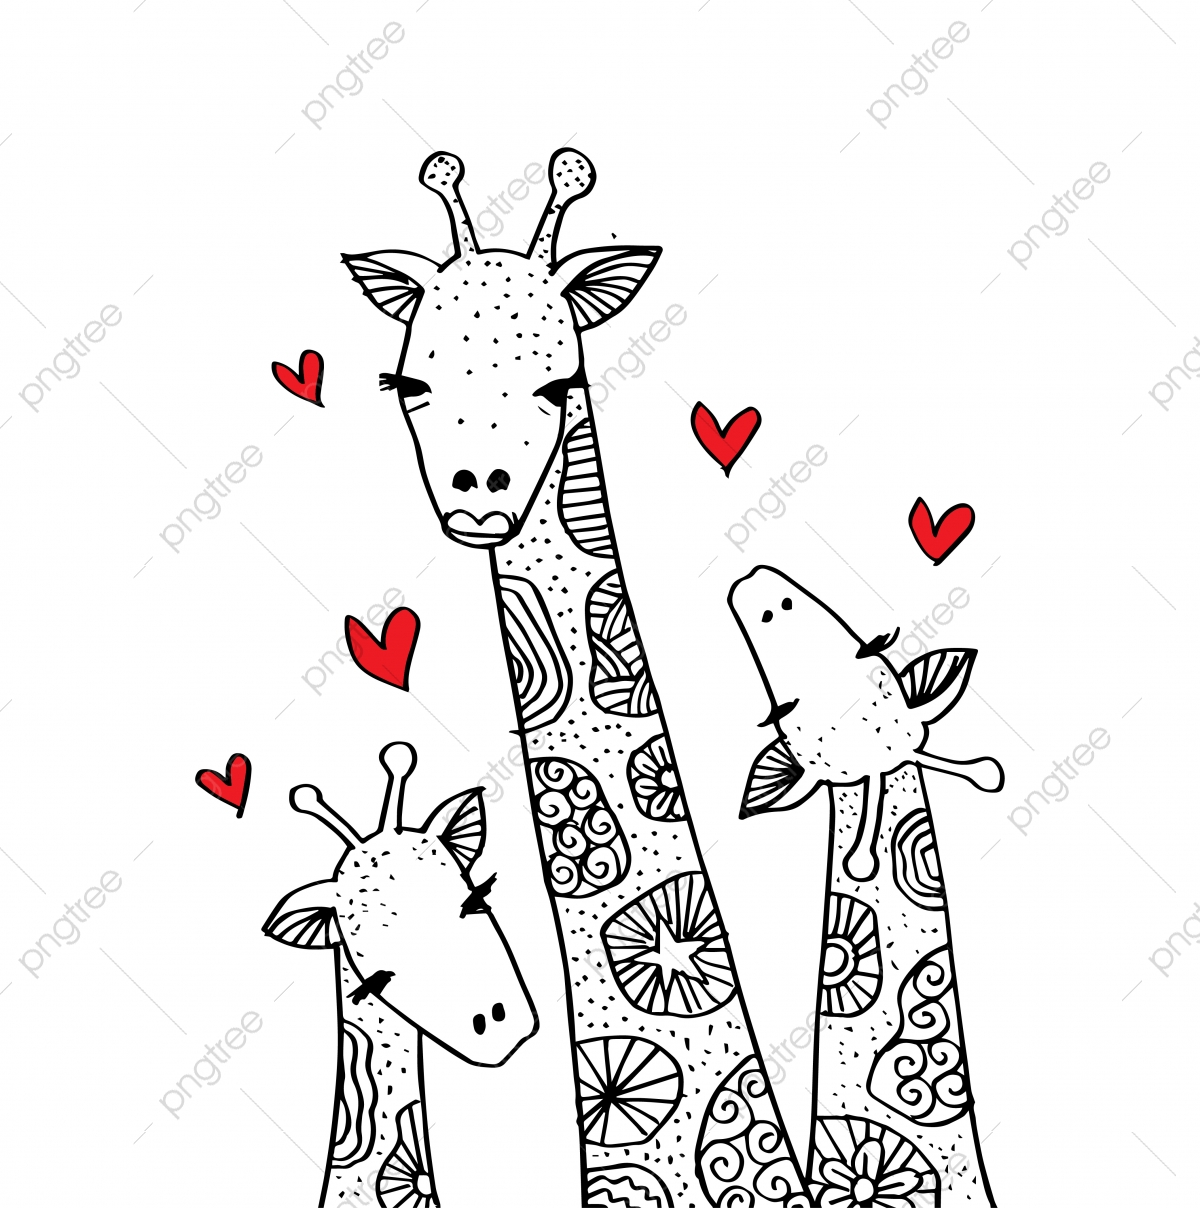 Cartoon Giraffe Mom And Baby Cute Adorable Africa African Png And Vector With Transparent Background For Free Download